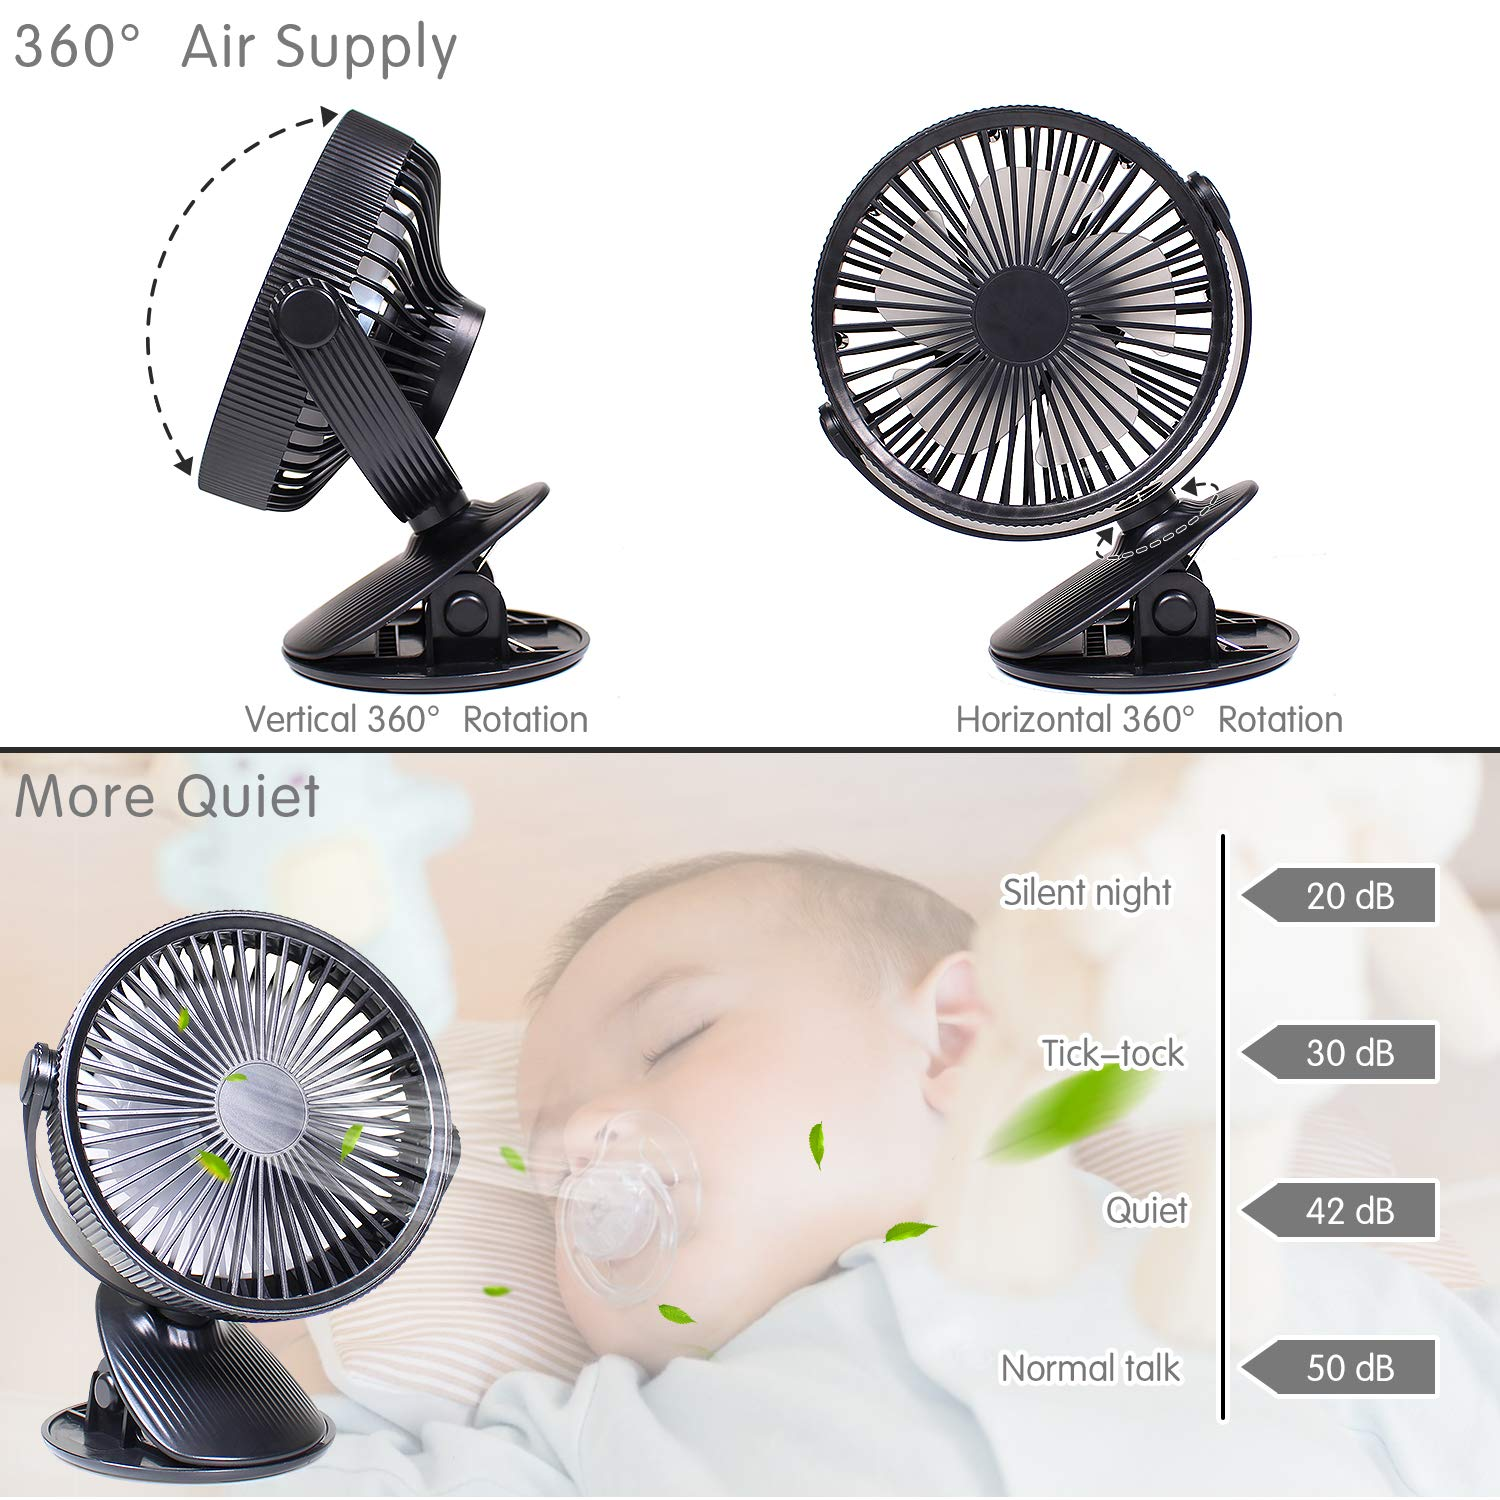 LATITOP Clip Desk Fan Mini Desk Fan Portable Rechargeable Battery or USB, Small Personal Fan for Baby Stroller Car Laptop Table Camping Outdoors Home Office